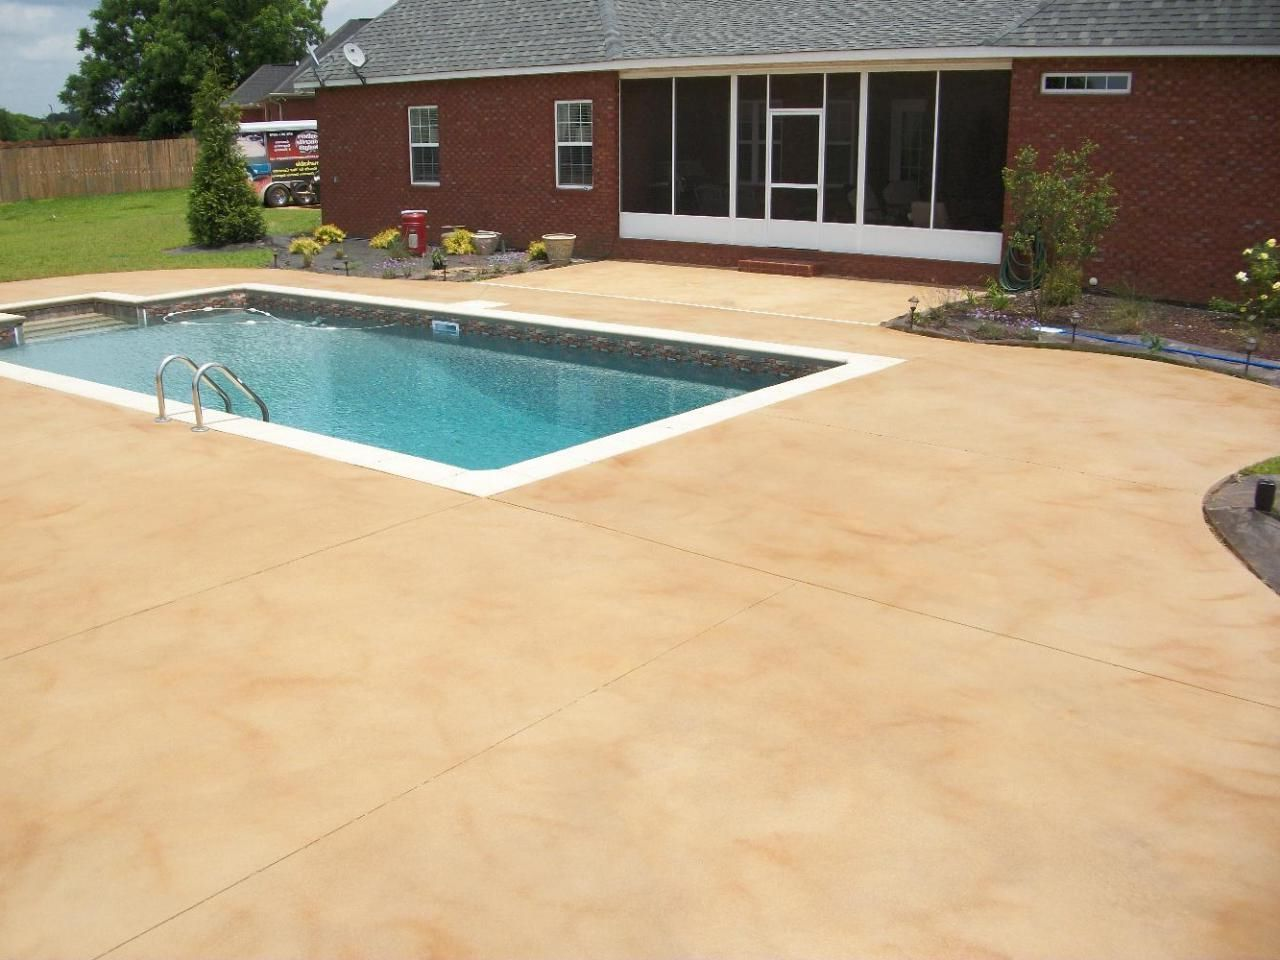 Best Paint For Concrete Pool Deck And Best Colors For A Cement Pool Deck Google Search Outdoor Concrete Pool Painted Patio Cement Pools